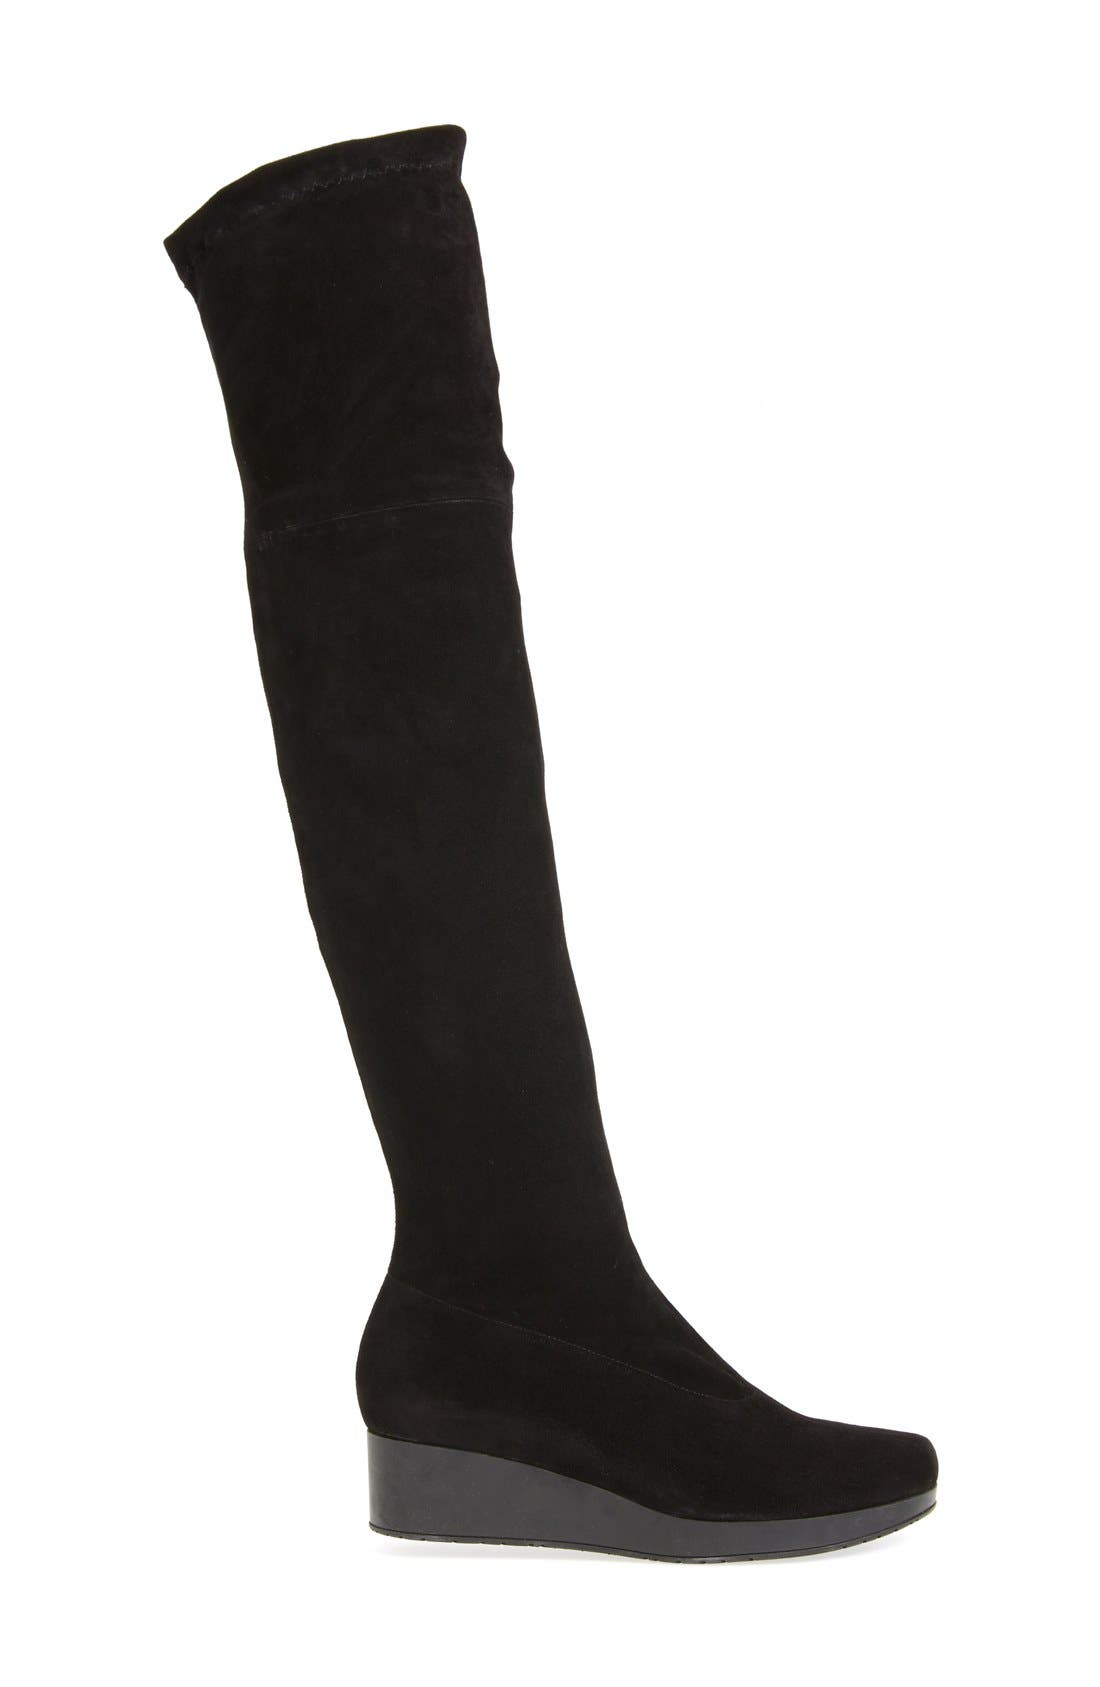 Wedge Over the Knee Boot,                             Alternate thumbnail 5, color,                             005